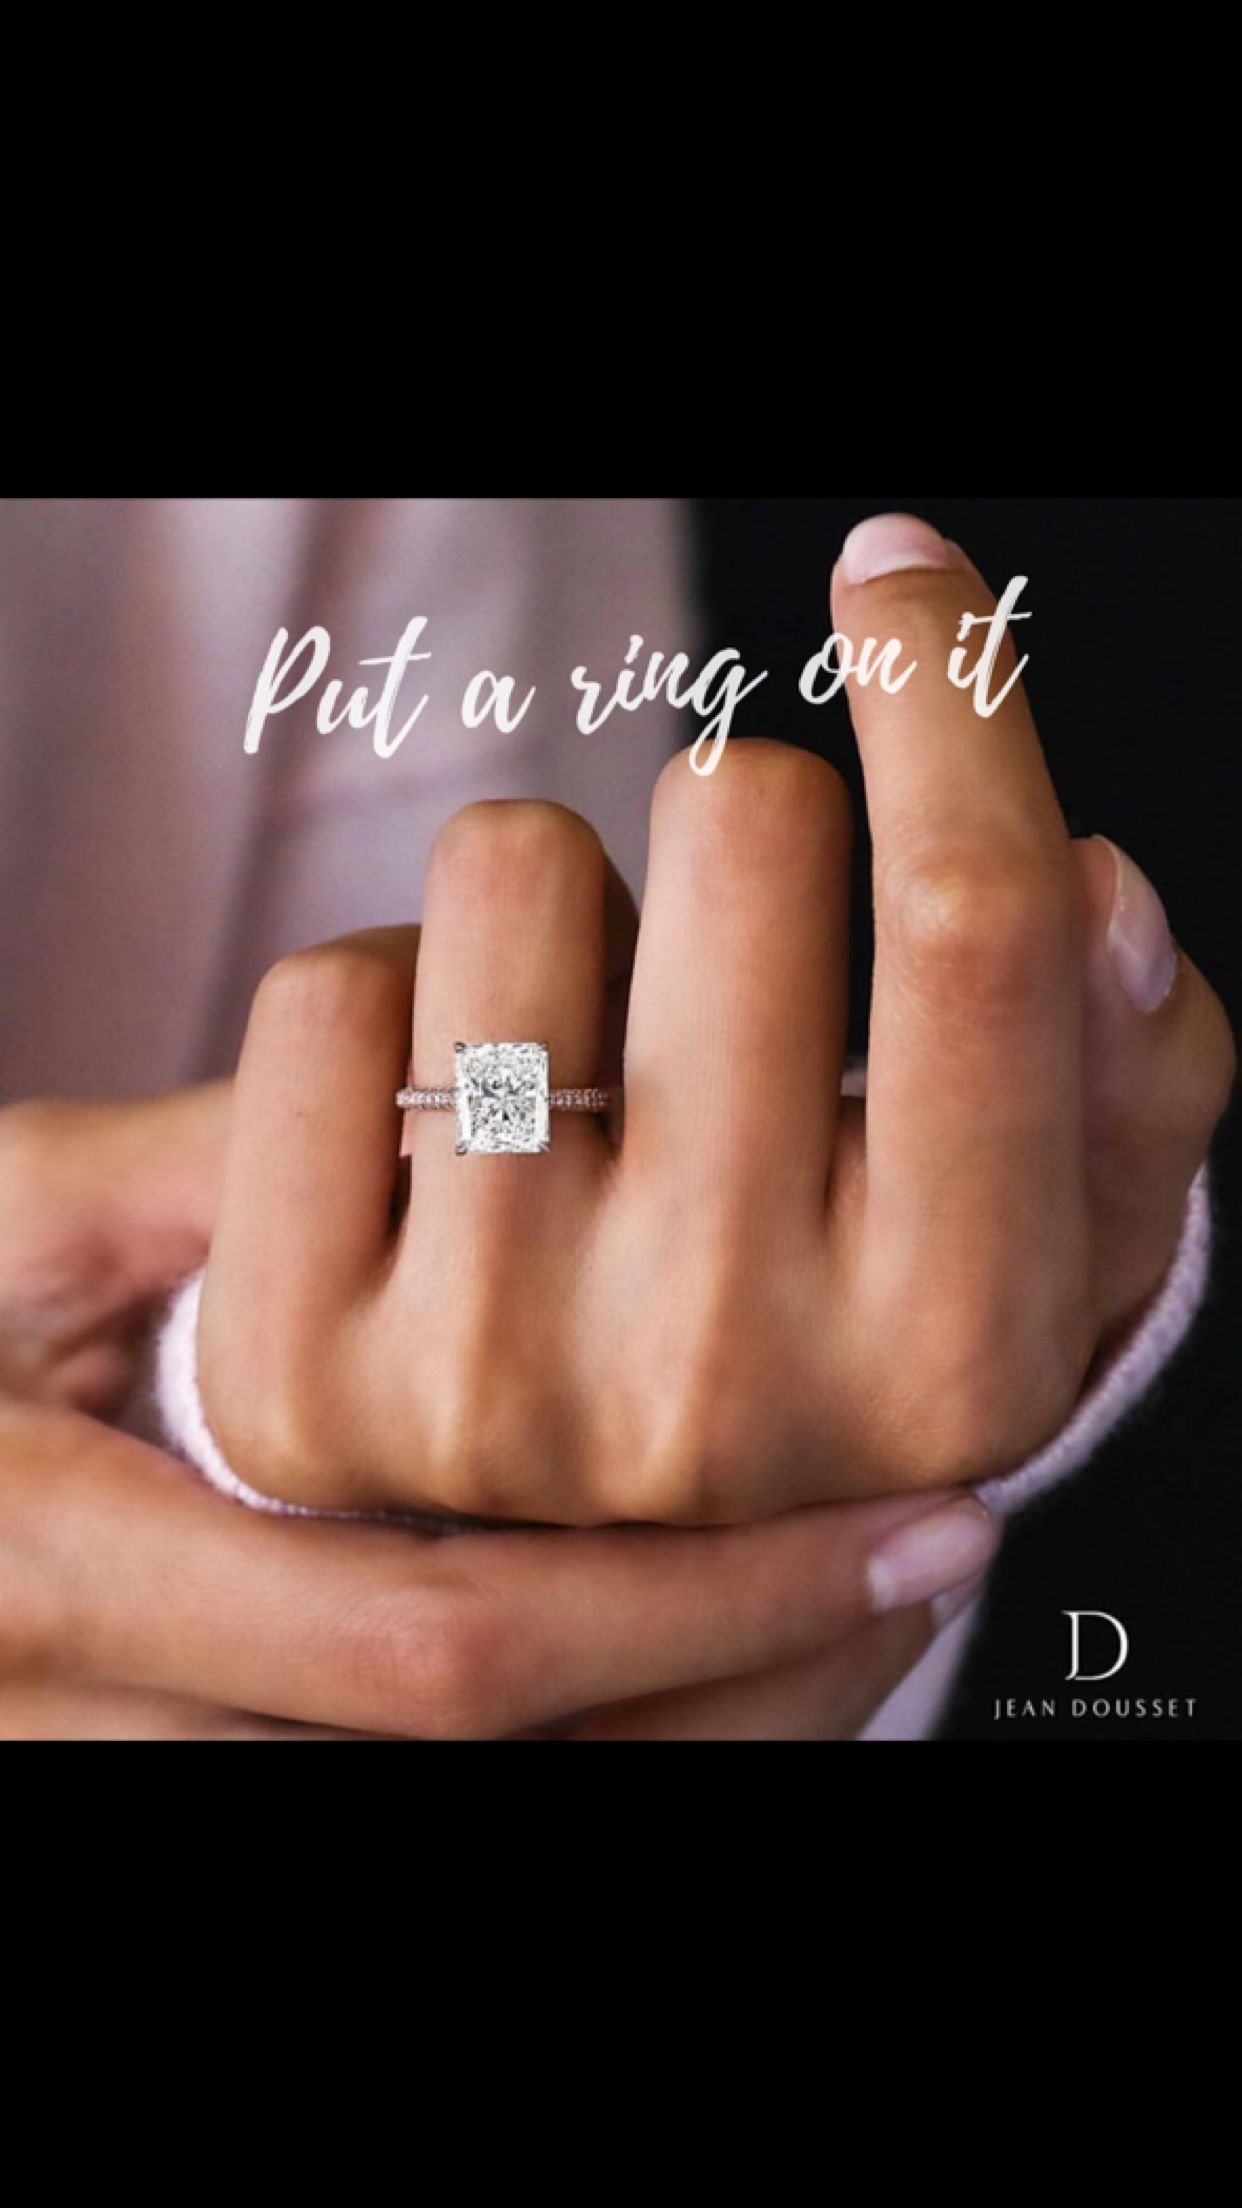 I can't wait for the day my promise ring is replaced with